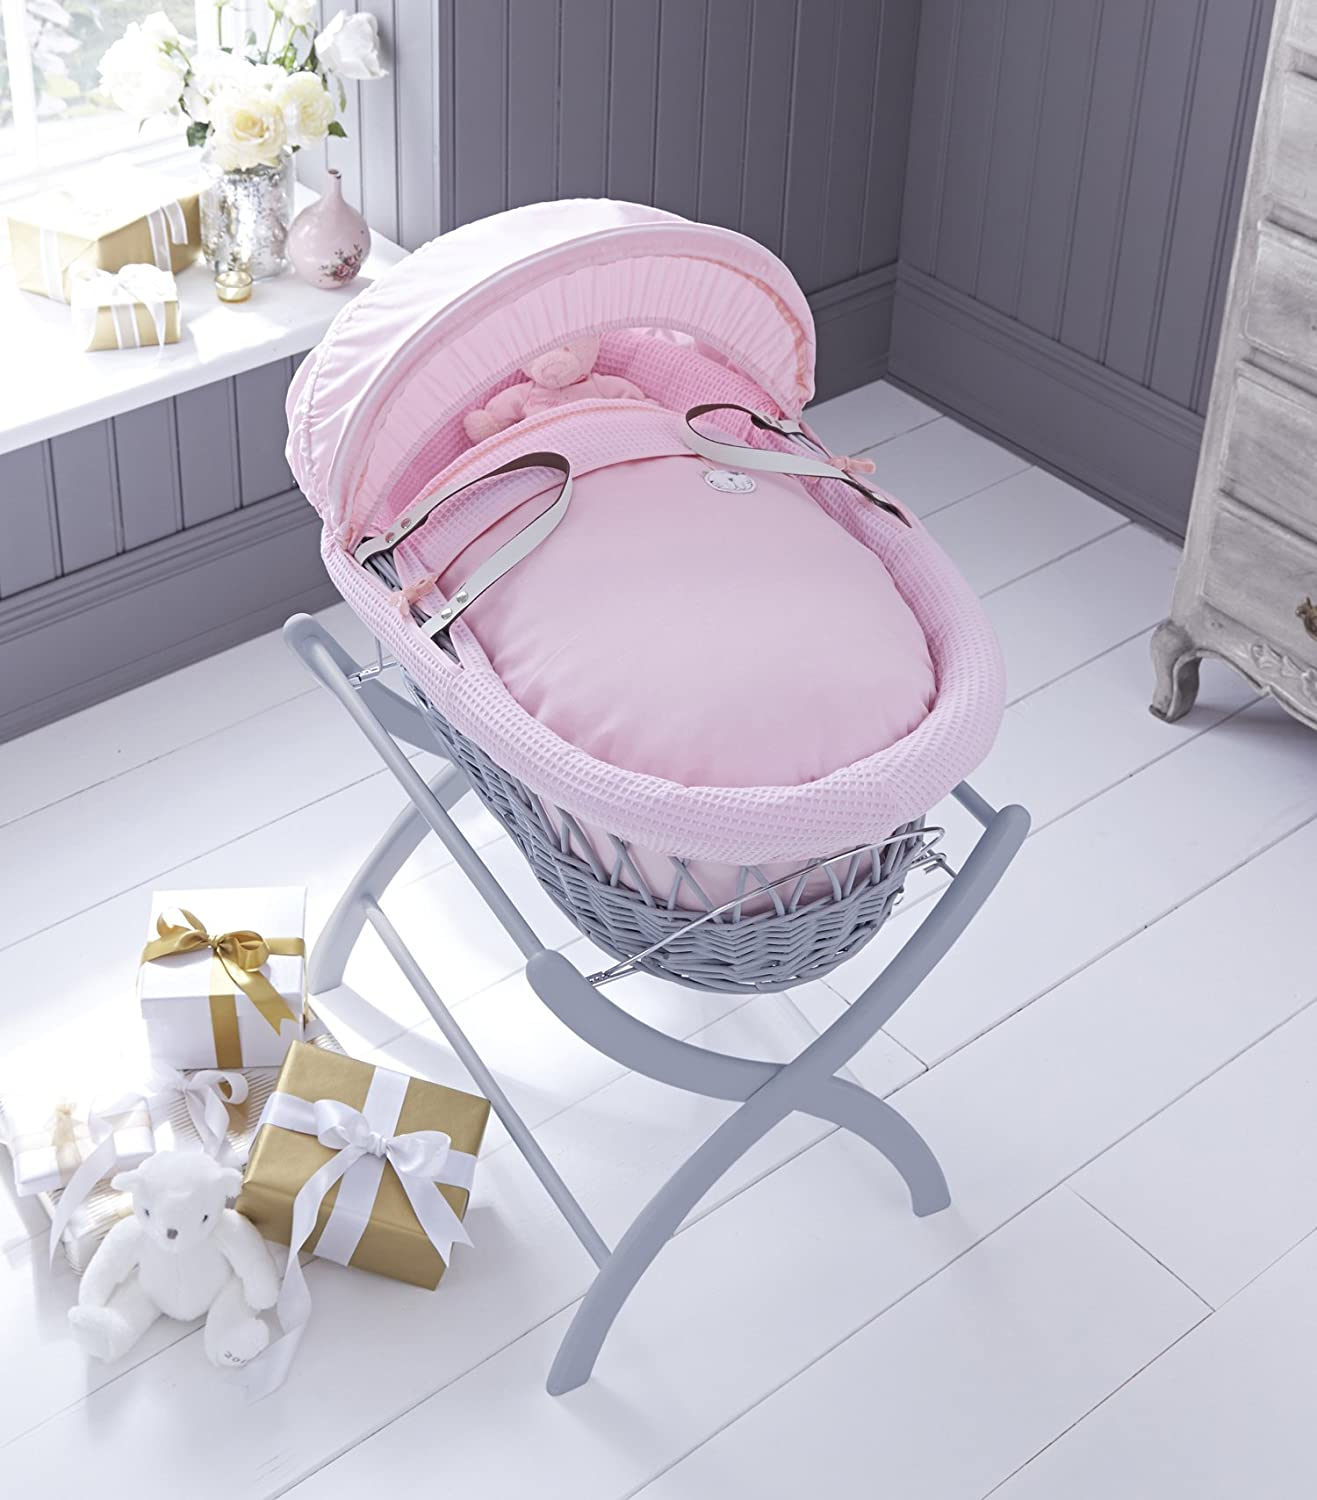 Izziwotnot Pink Gift on Dark Wicker Moses Basket